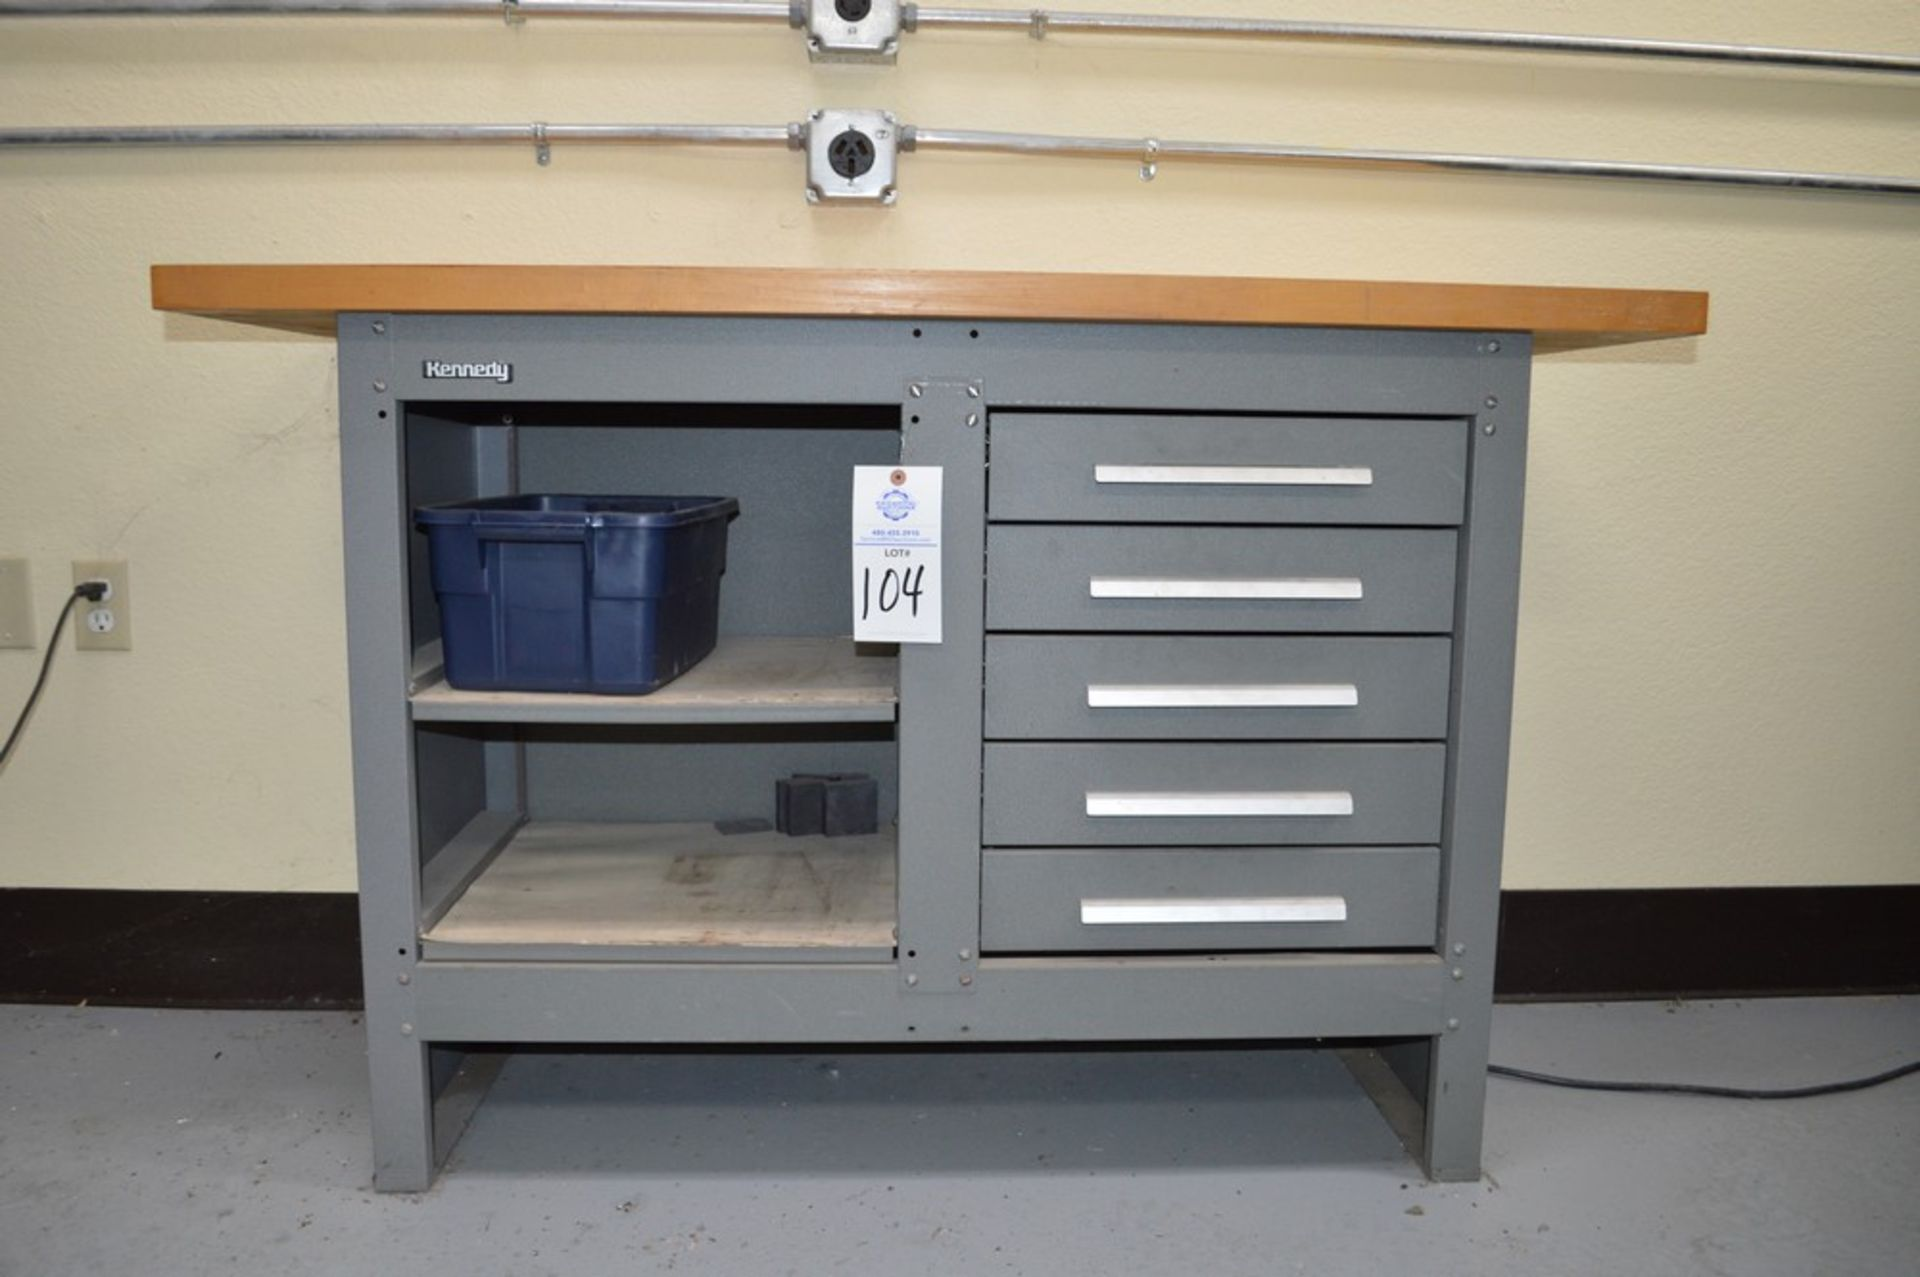 """Kennedy Wood Top, 5 drawer work bench, 54"""" x 20"""" wood top, 34.5"""" tall - Image 3 of 3"""